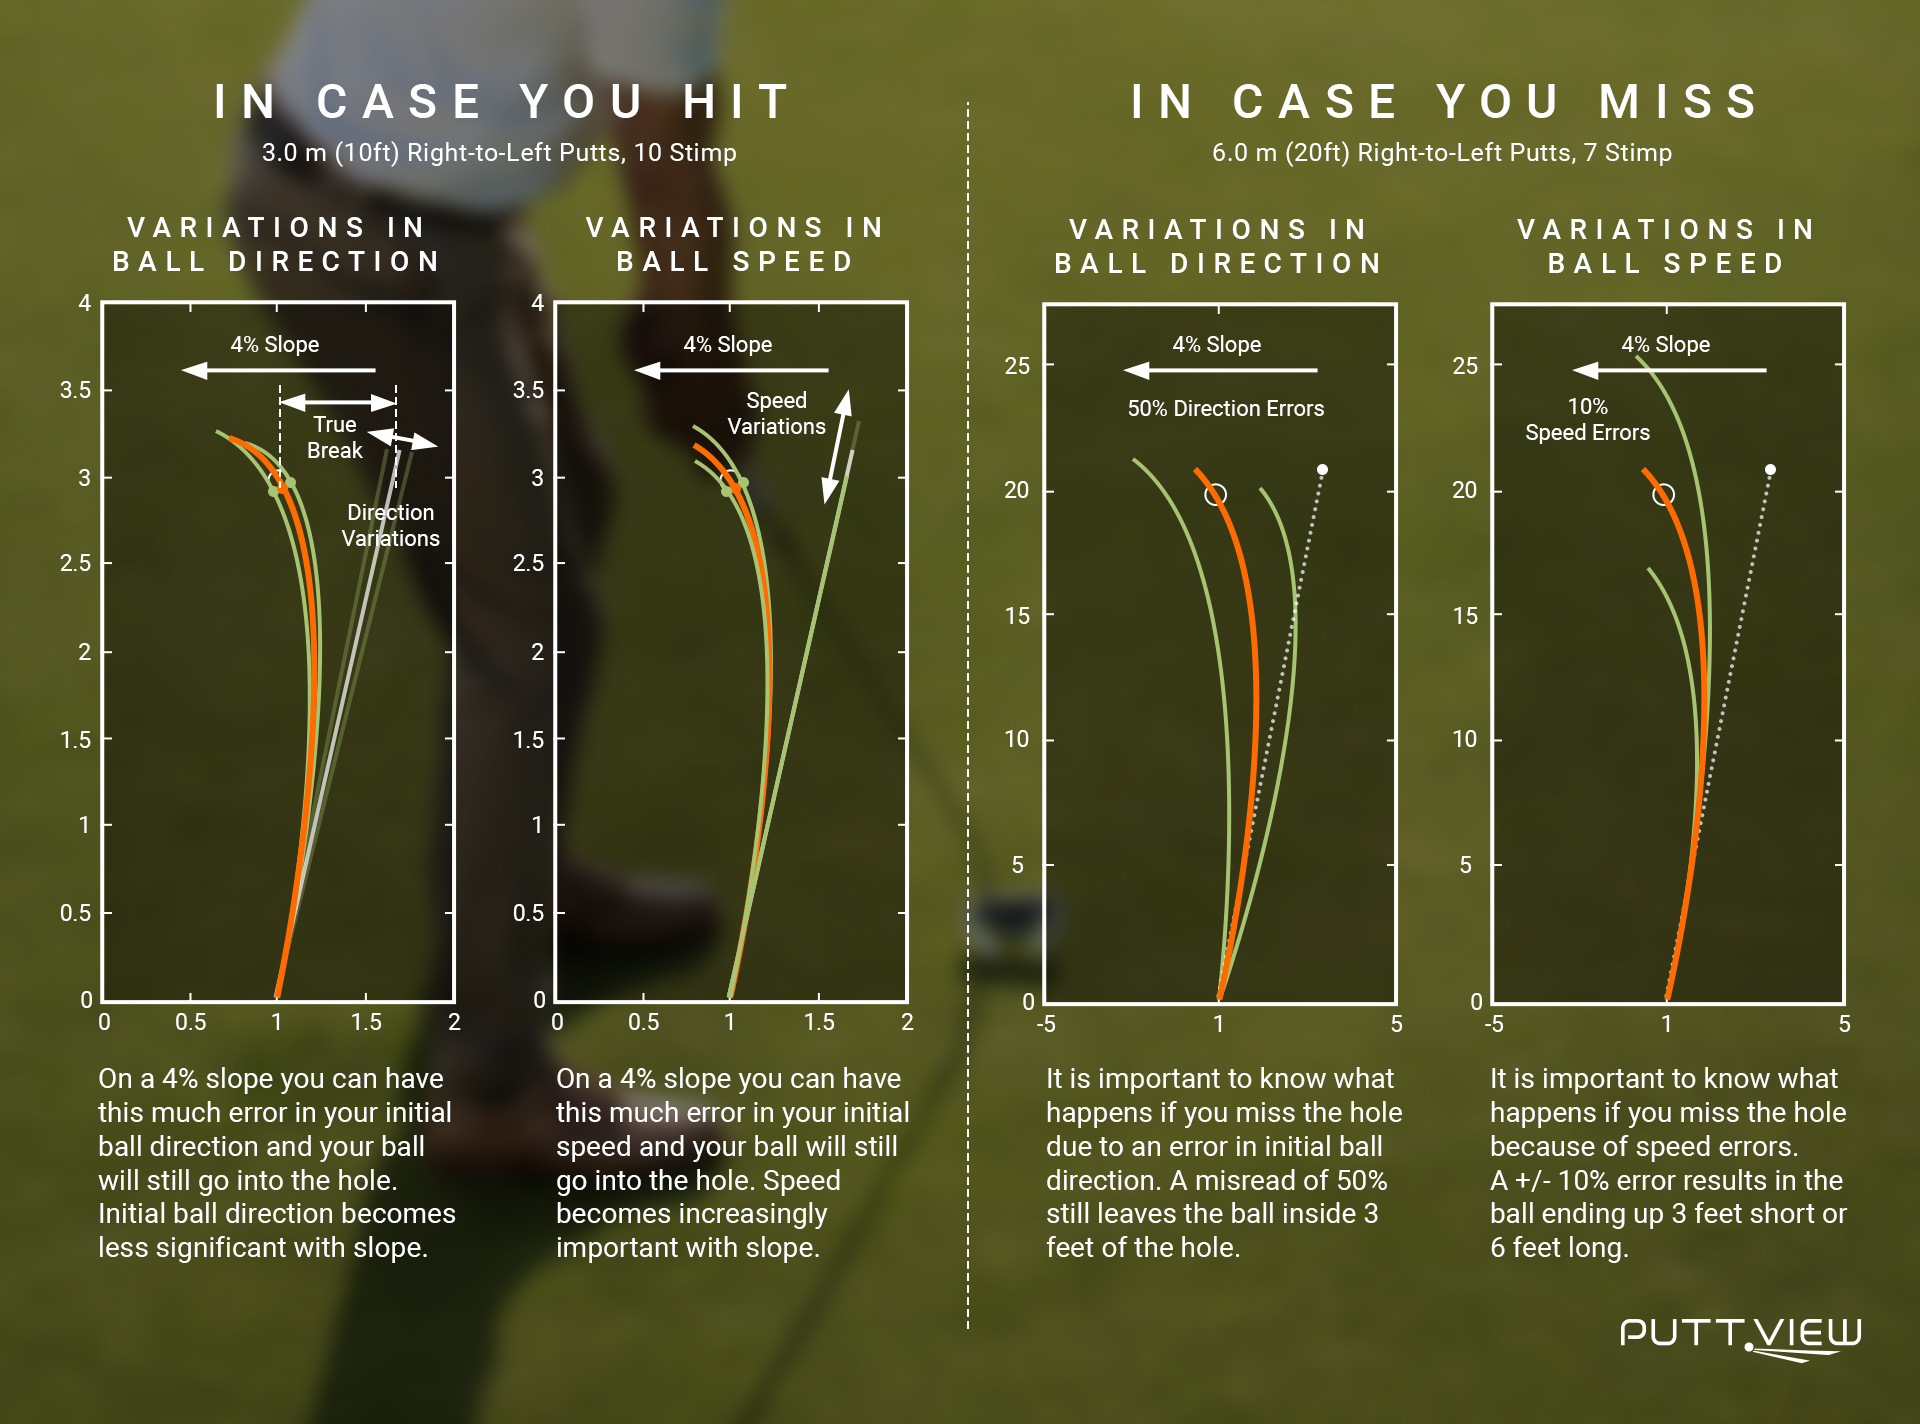 The room for error in initial ball direction is bigger than with initial putting speed